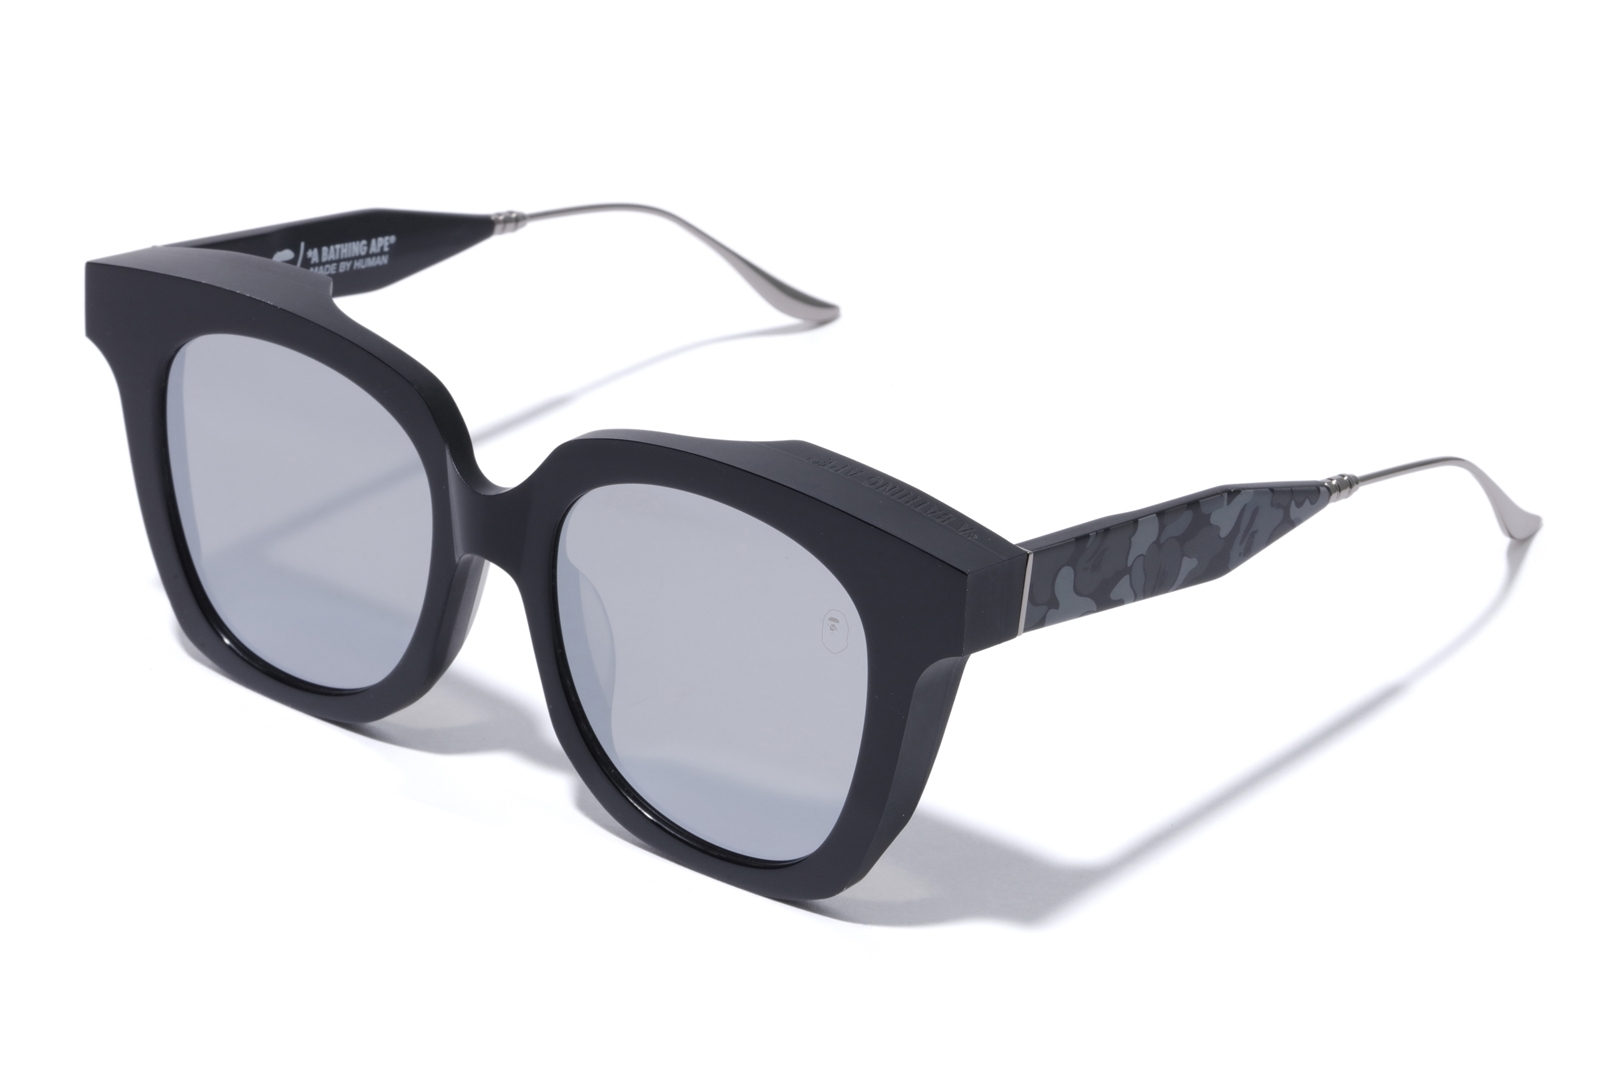 SUNGLASSES 3_a0174495_13351972.jpg